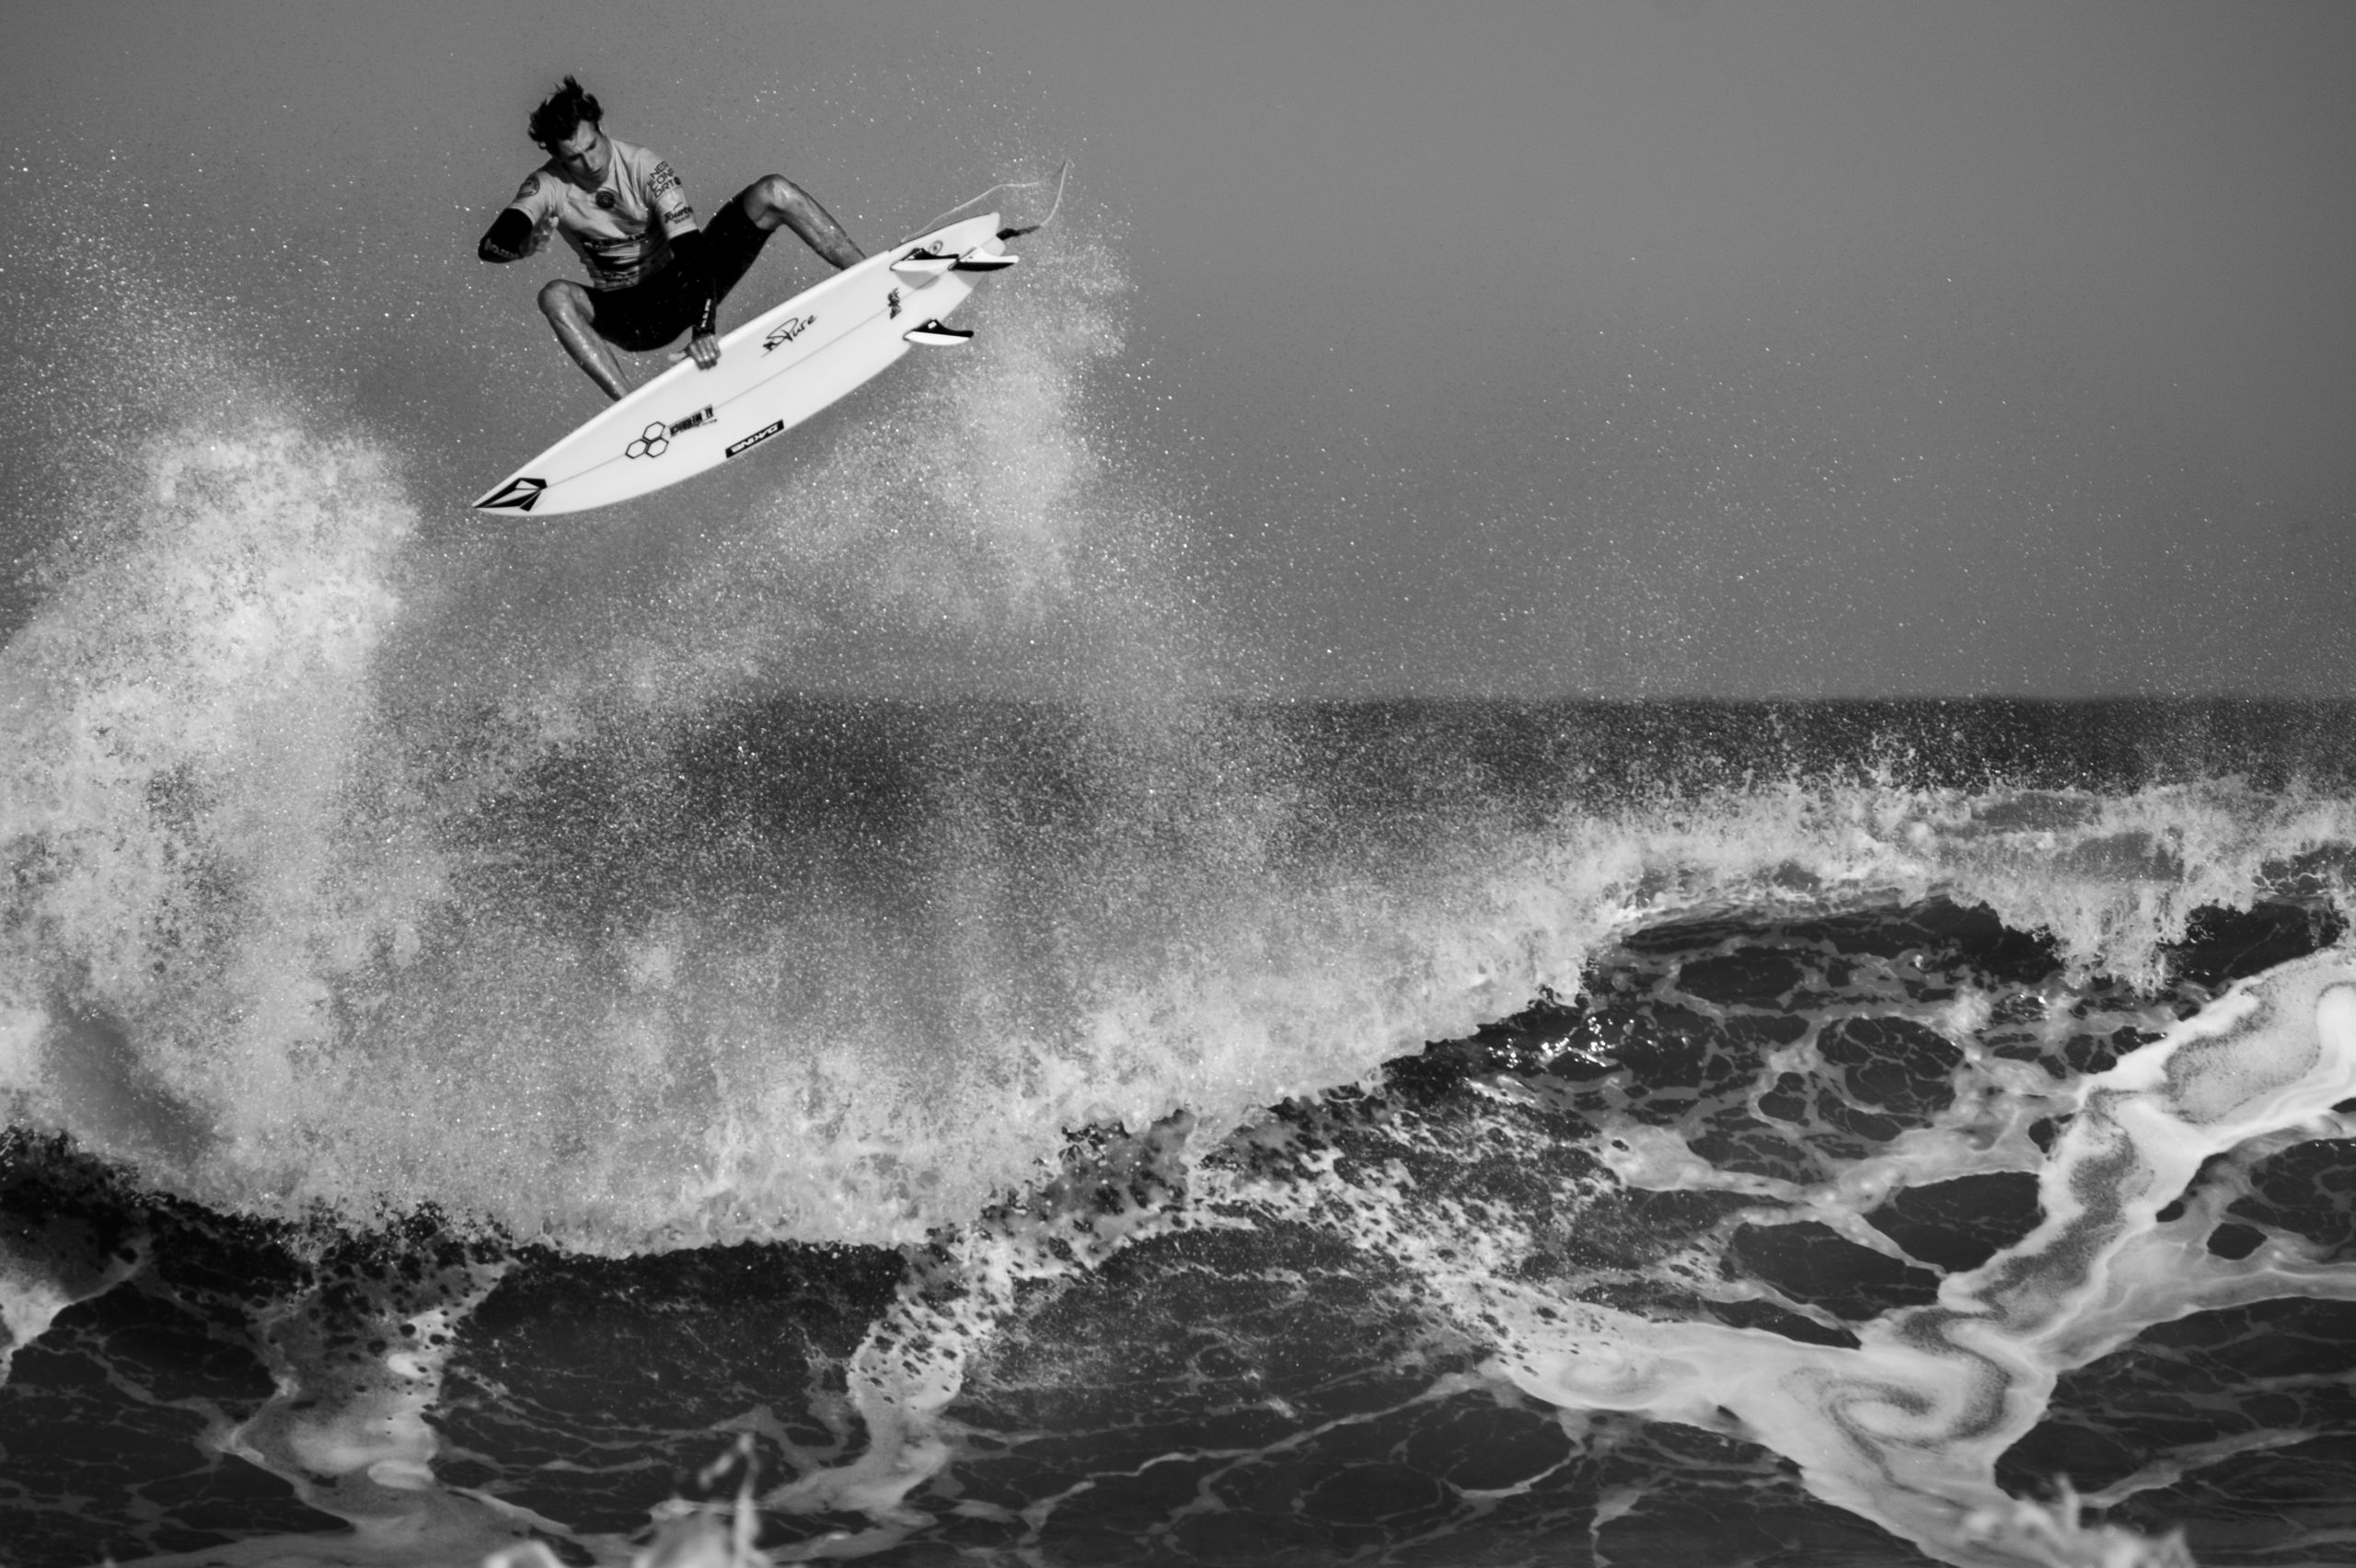 Here Is The Surfing World Review